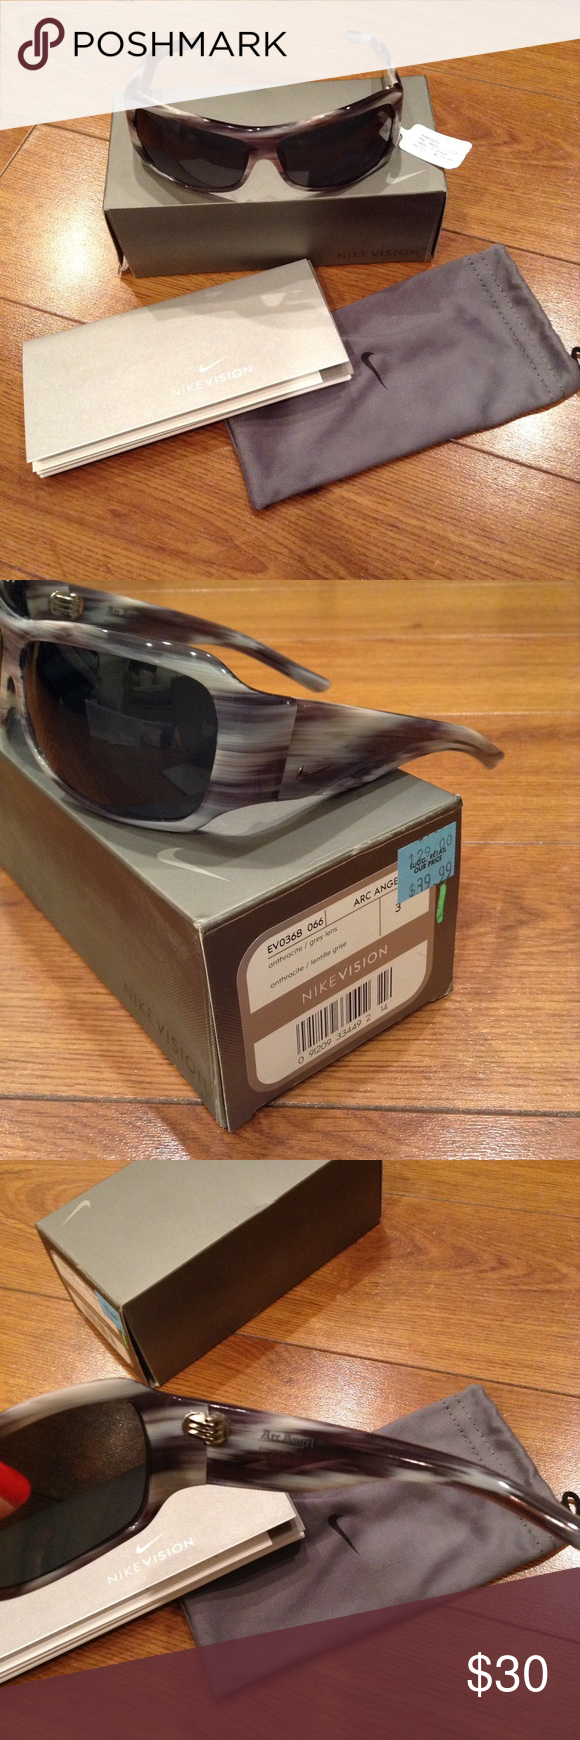 🌟NIKE Men's Sunglasses. EUC!🌟 Worn just a couple of times. No scratches or damage. Comes with everything you see. Retails for over $100. Got them on clearance for $39.99. Great deal for a great pair of sunglasses! Thanks for looking! Nike Accessories Sunglasses